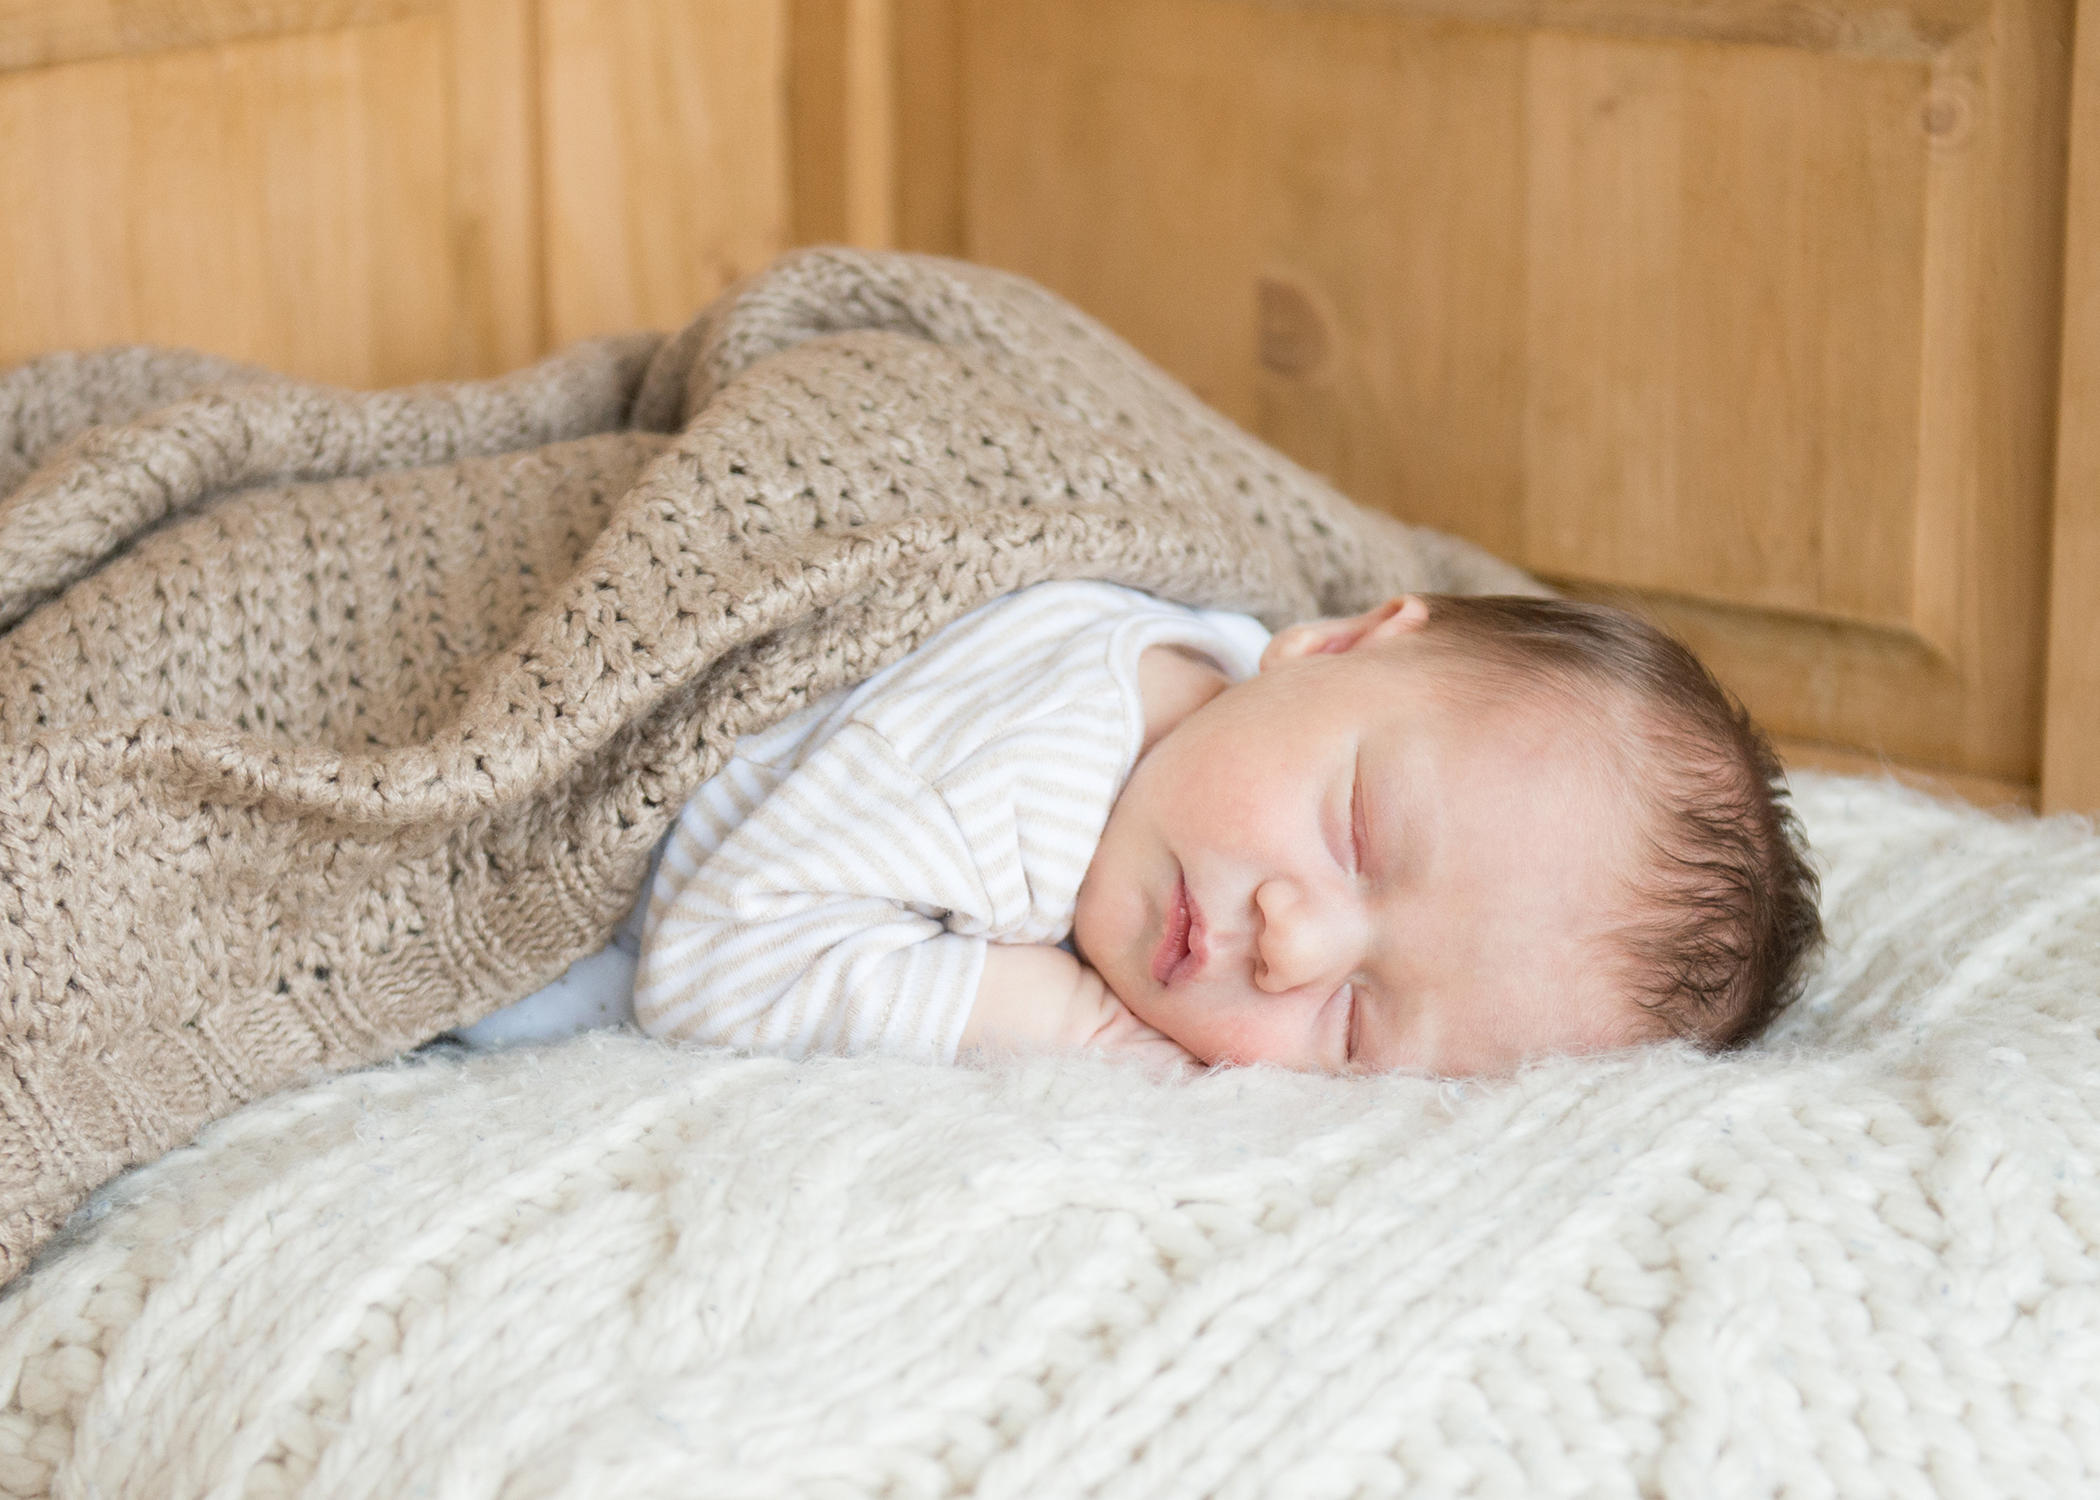 Sleeping baby photo